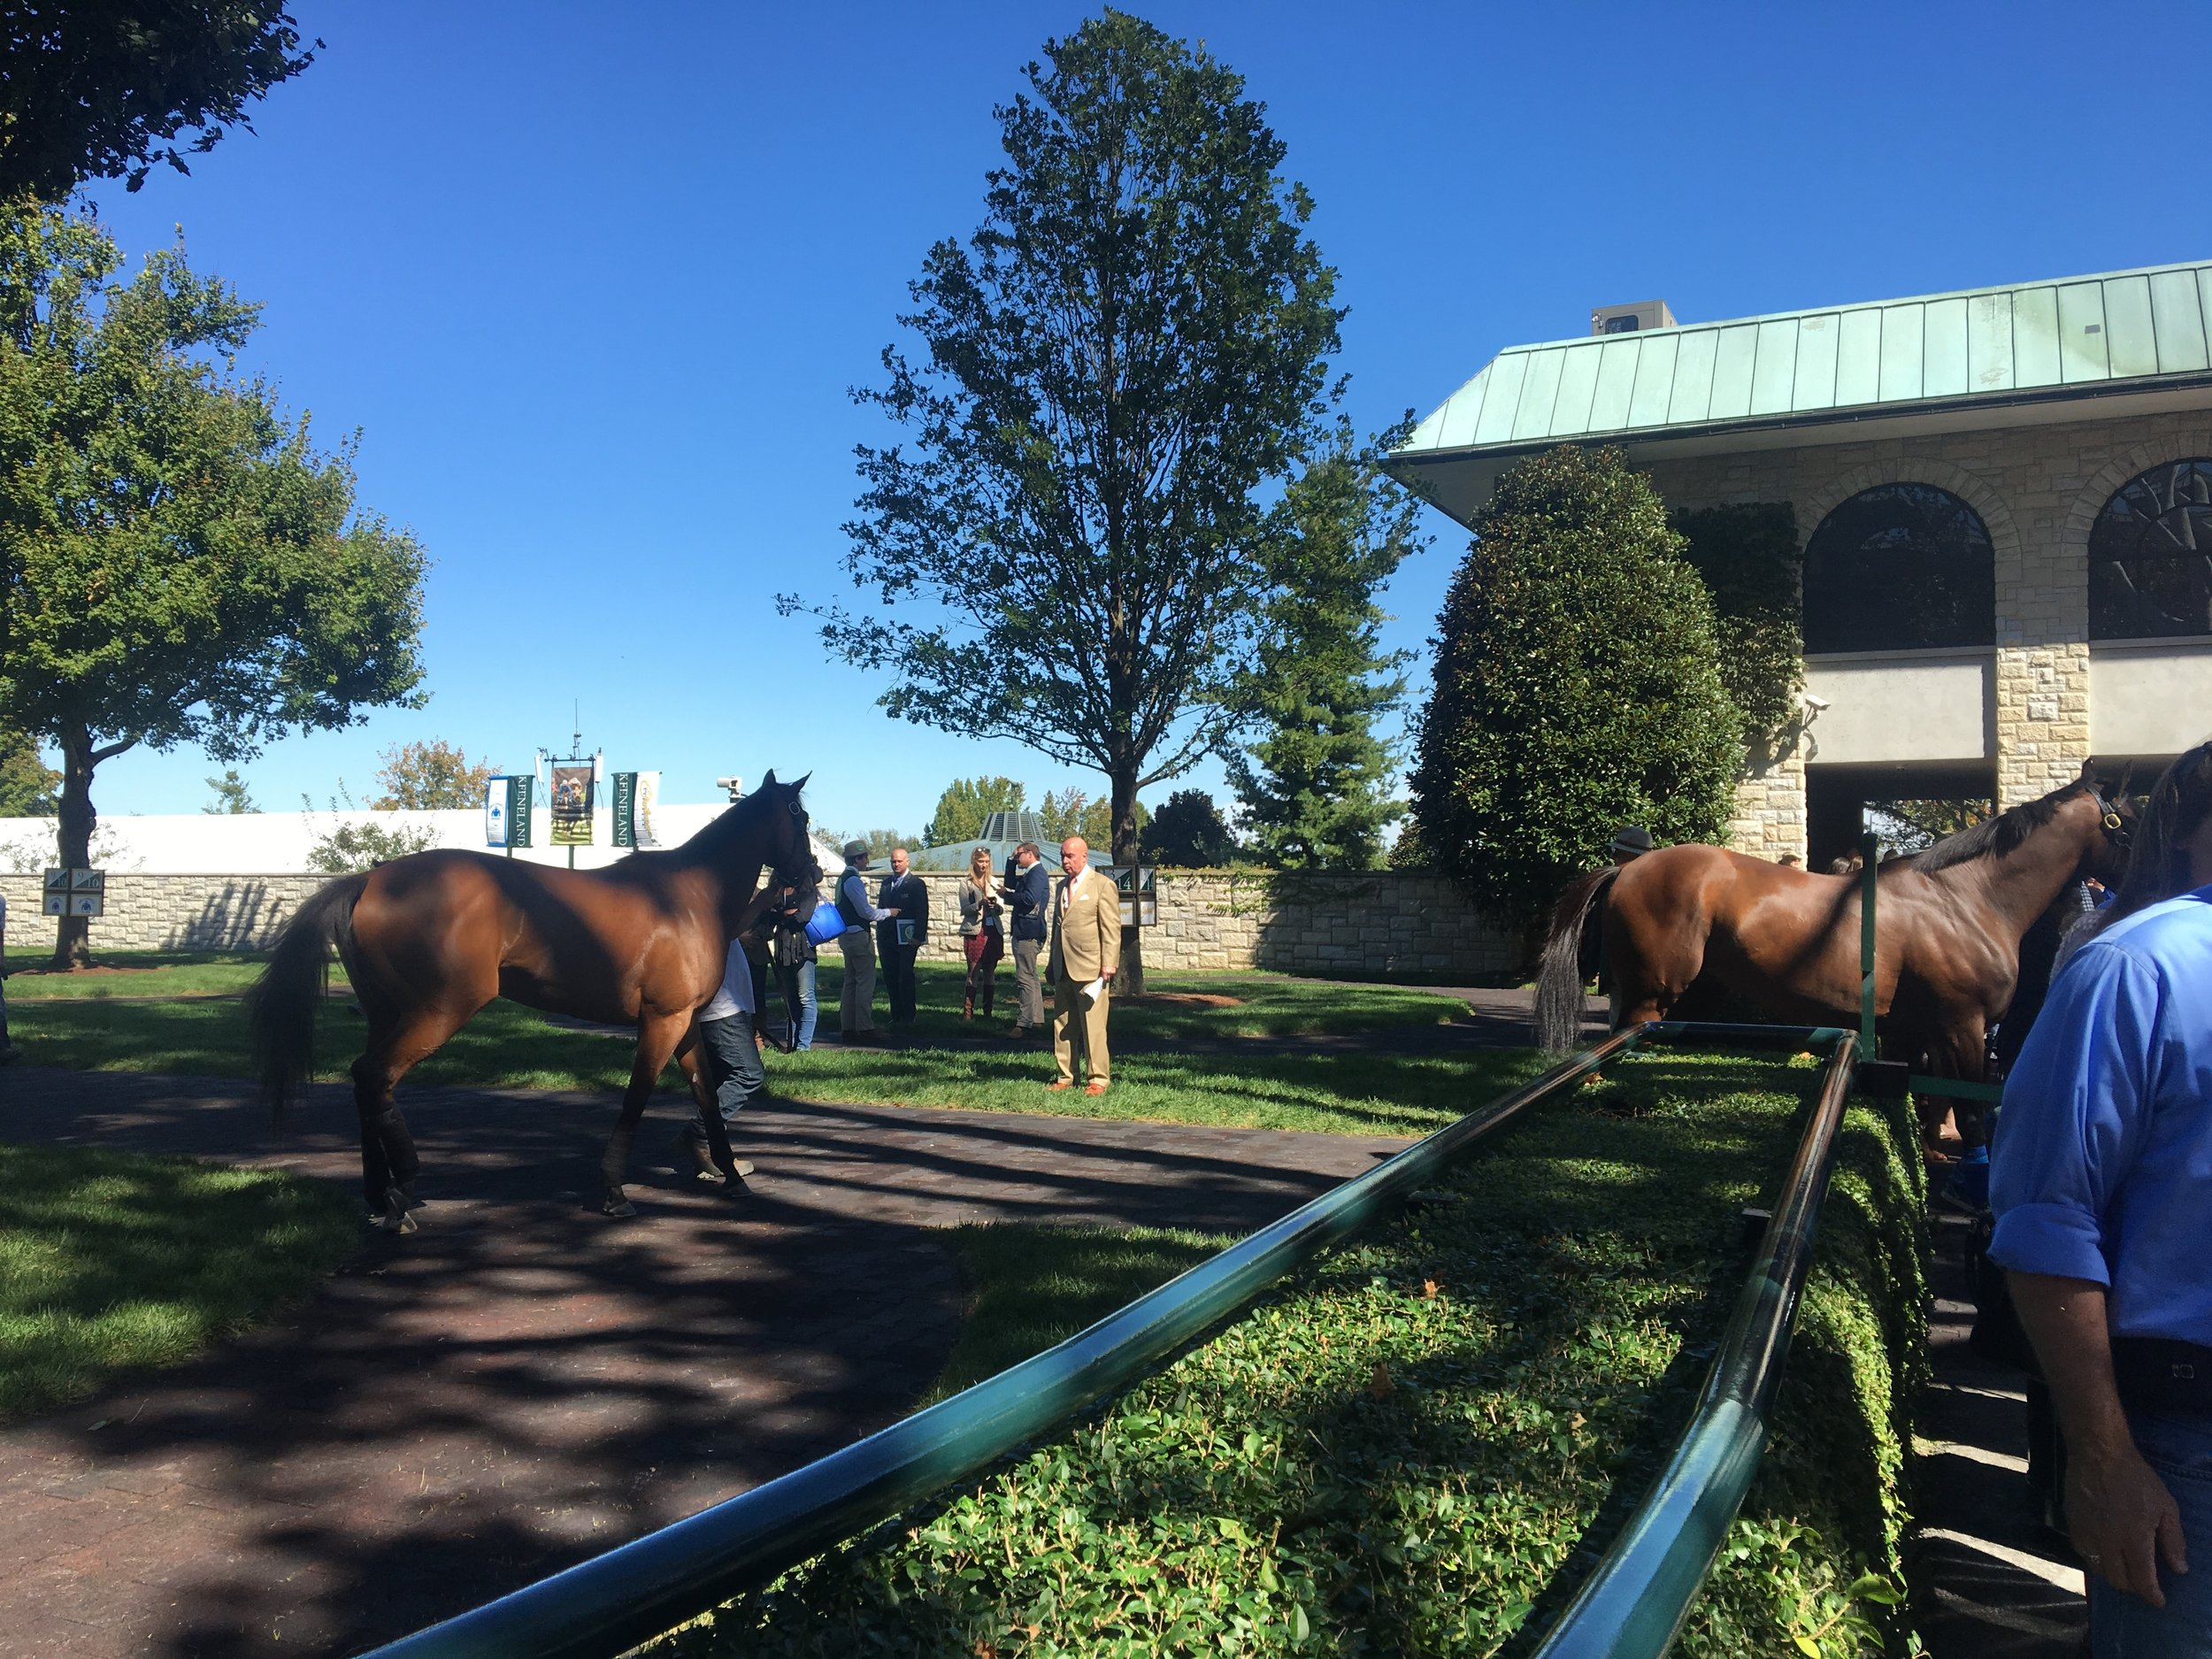 They bring all the horses around the plaza to show them off. Apparently if your really serious you study their coat and their trot to analyze them for your betting.